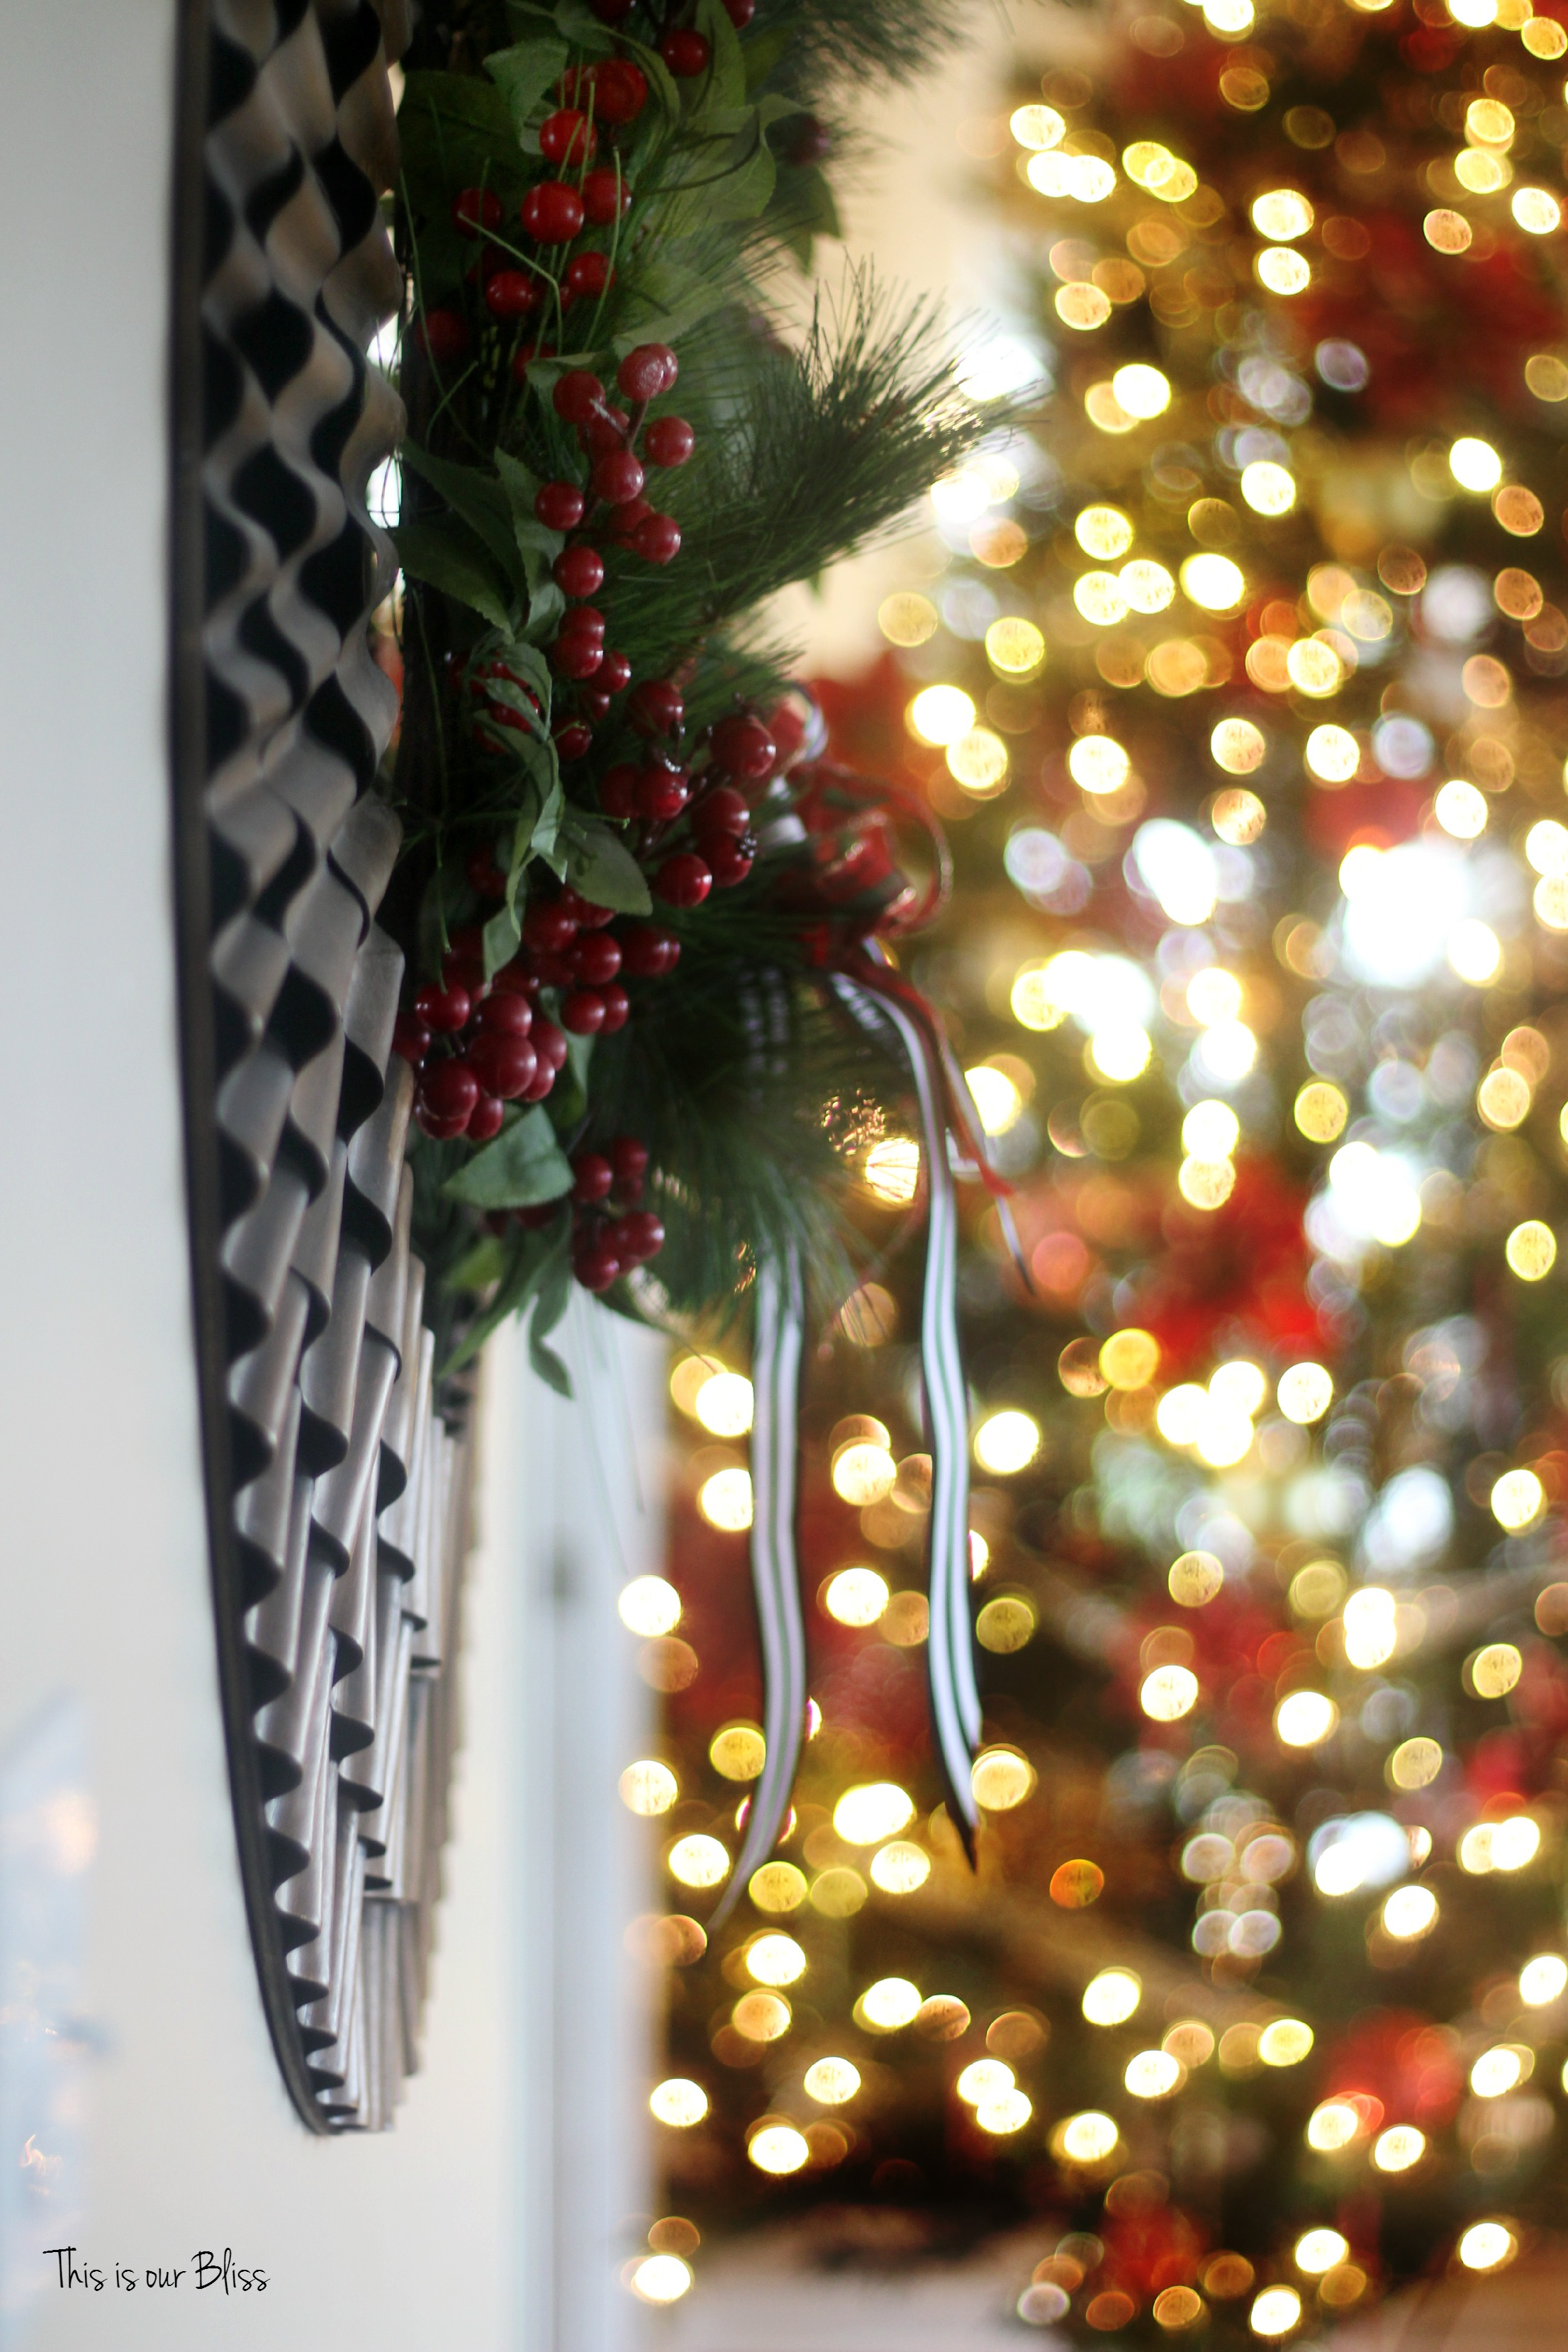 Uncategorized christmas decorations amp holiday decorations - The Goldish Bronze Ruffle Mirror Got Some Wreath Treatment And A Few Added Plaid Striped Ribbons Made It Feel Right At Home